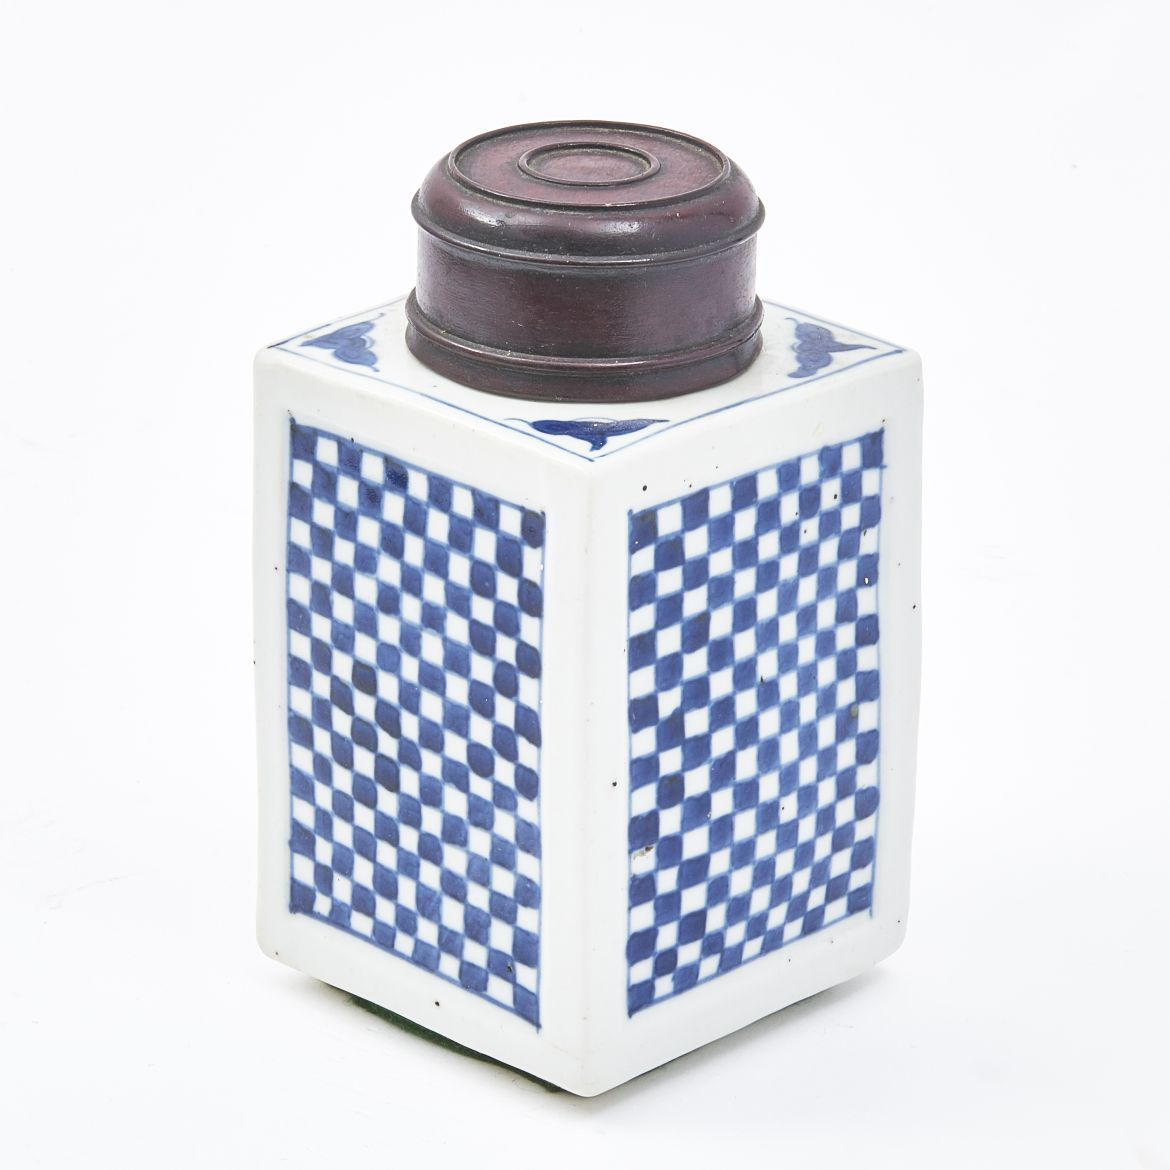 Chinese Blue and White Tea Caddy